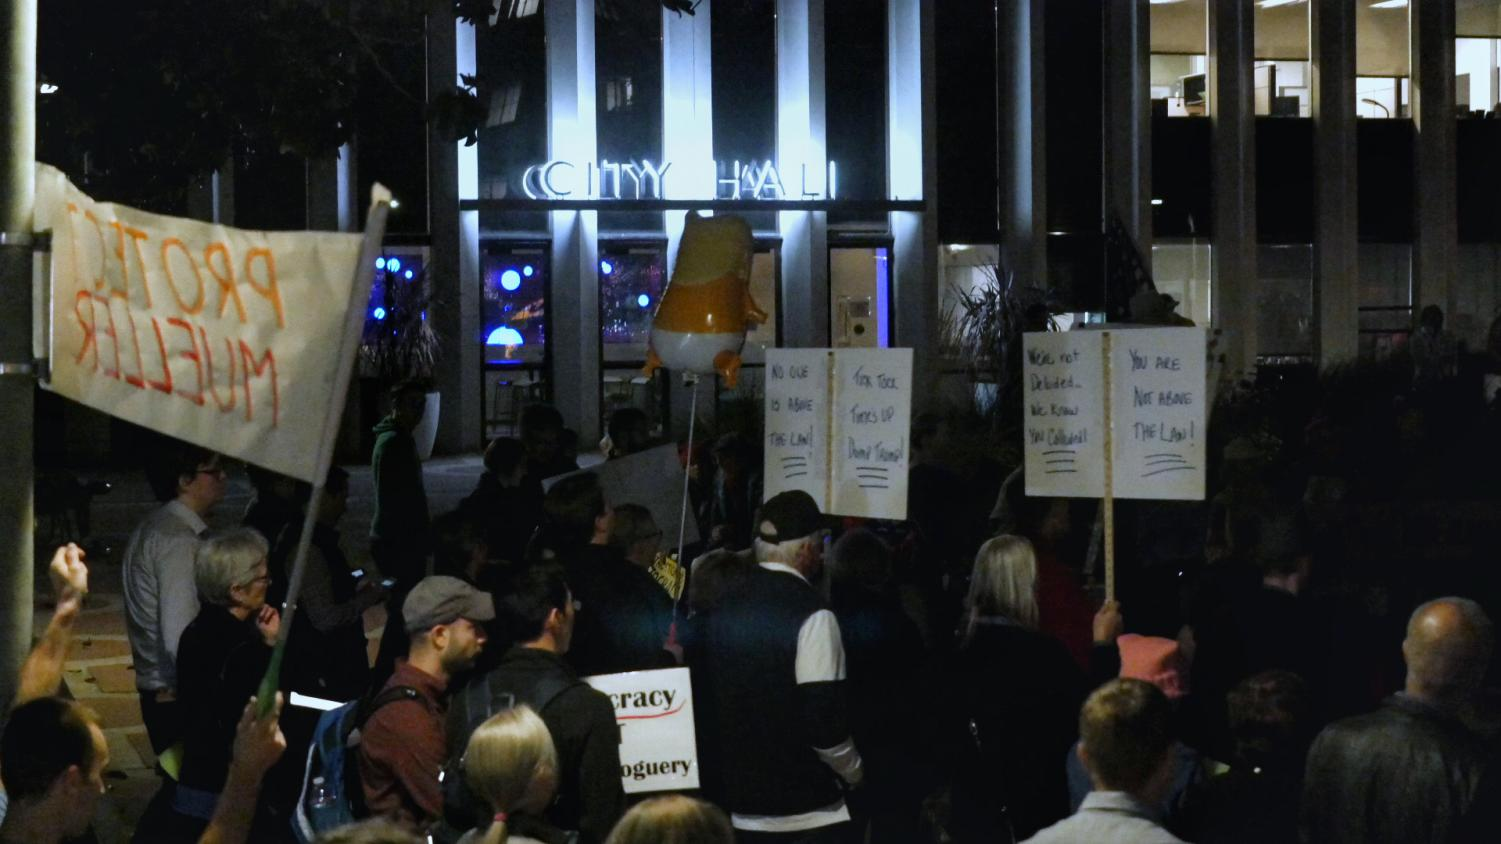 Palo Alto rallies to protect Mueller – Video recap